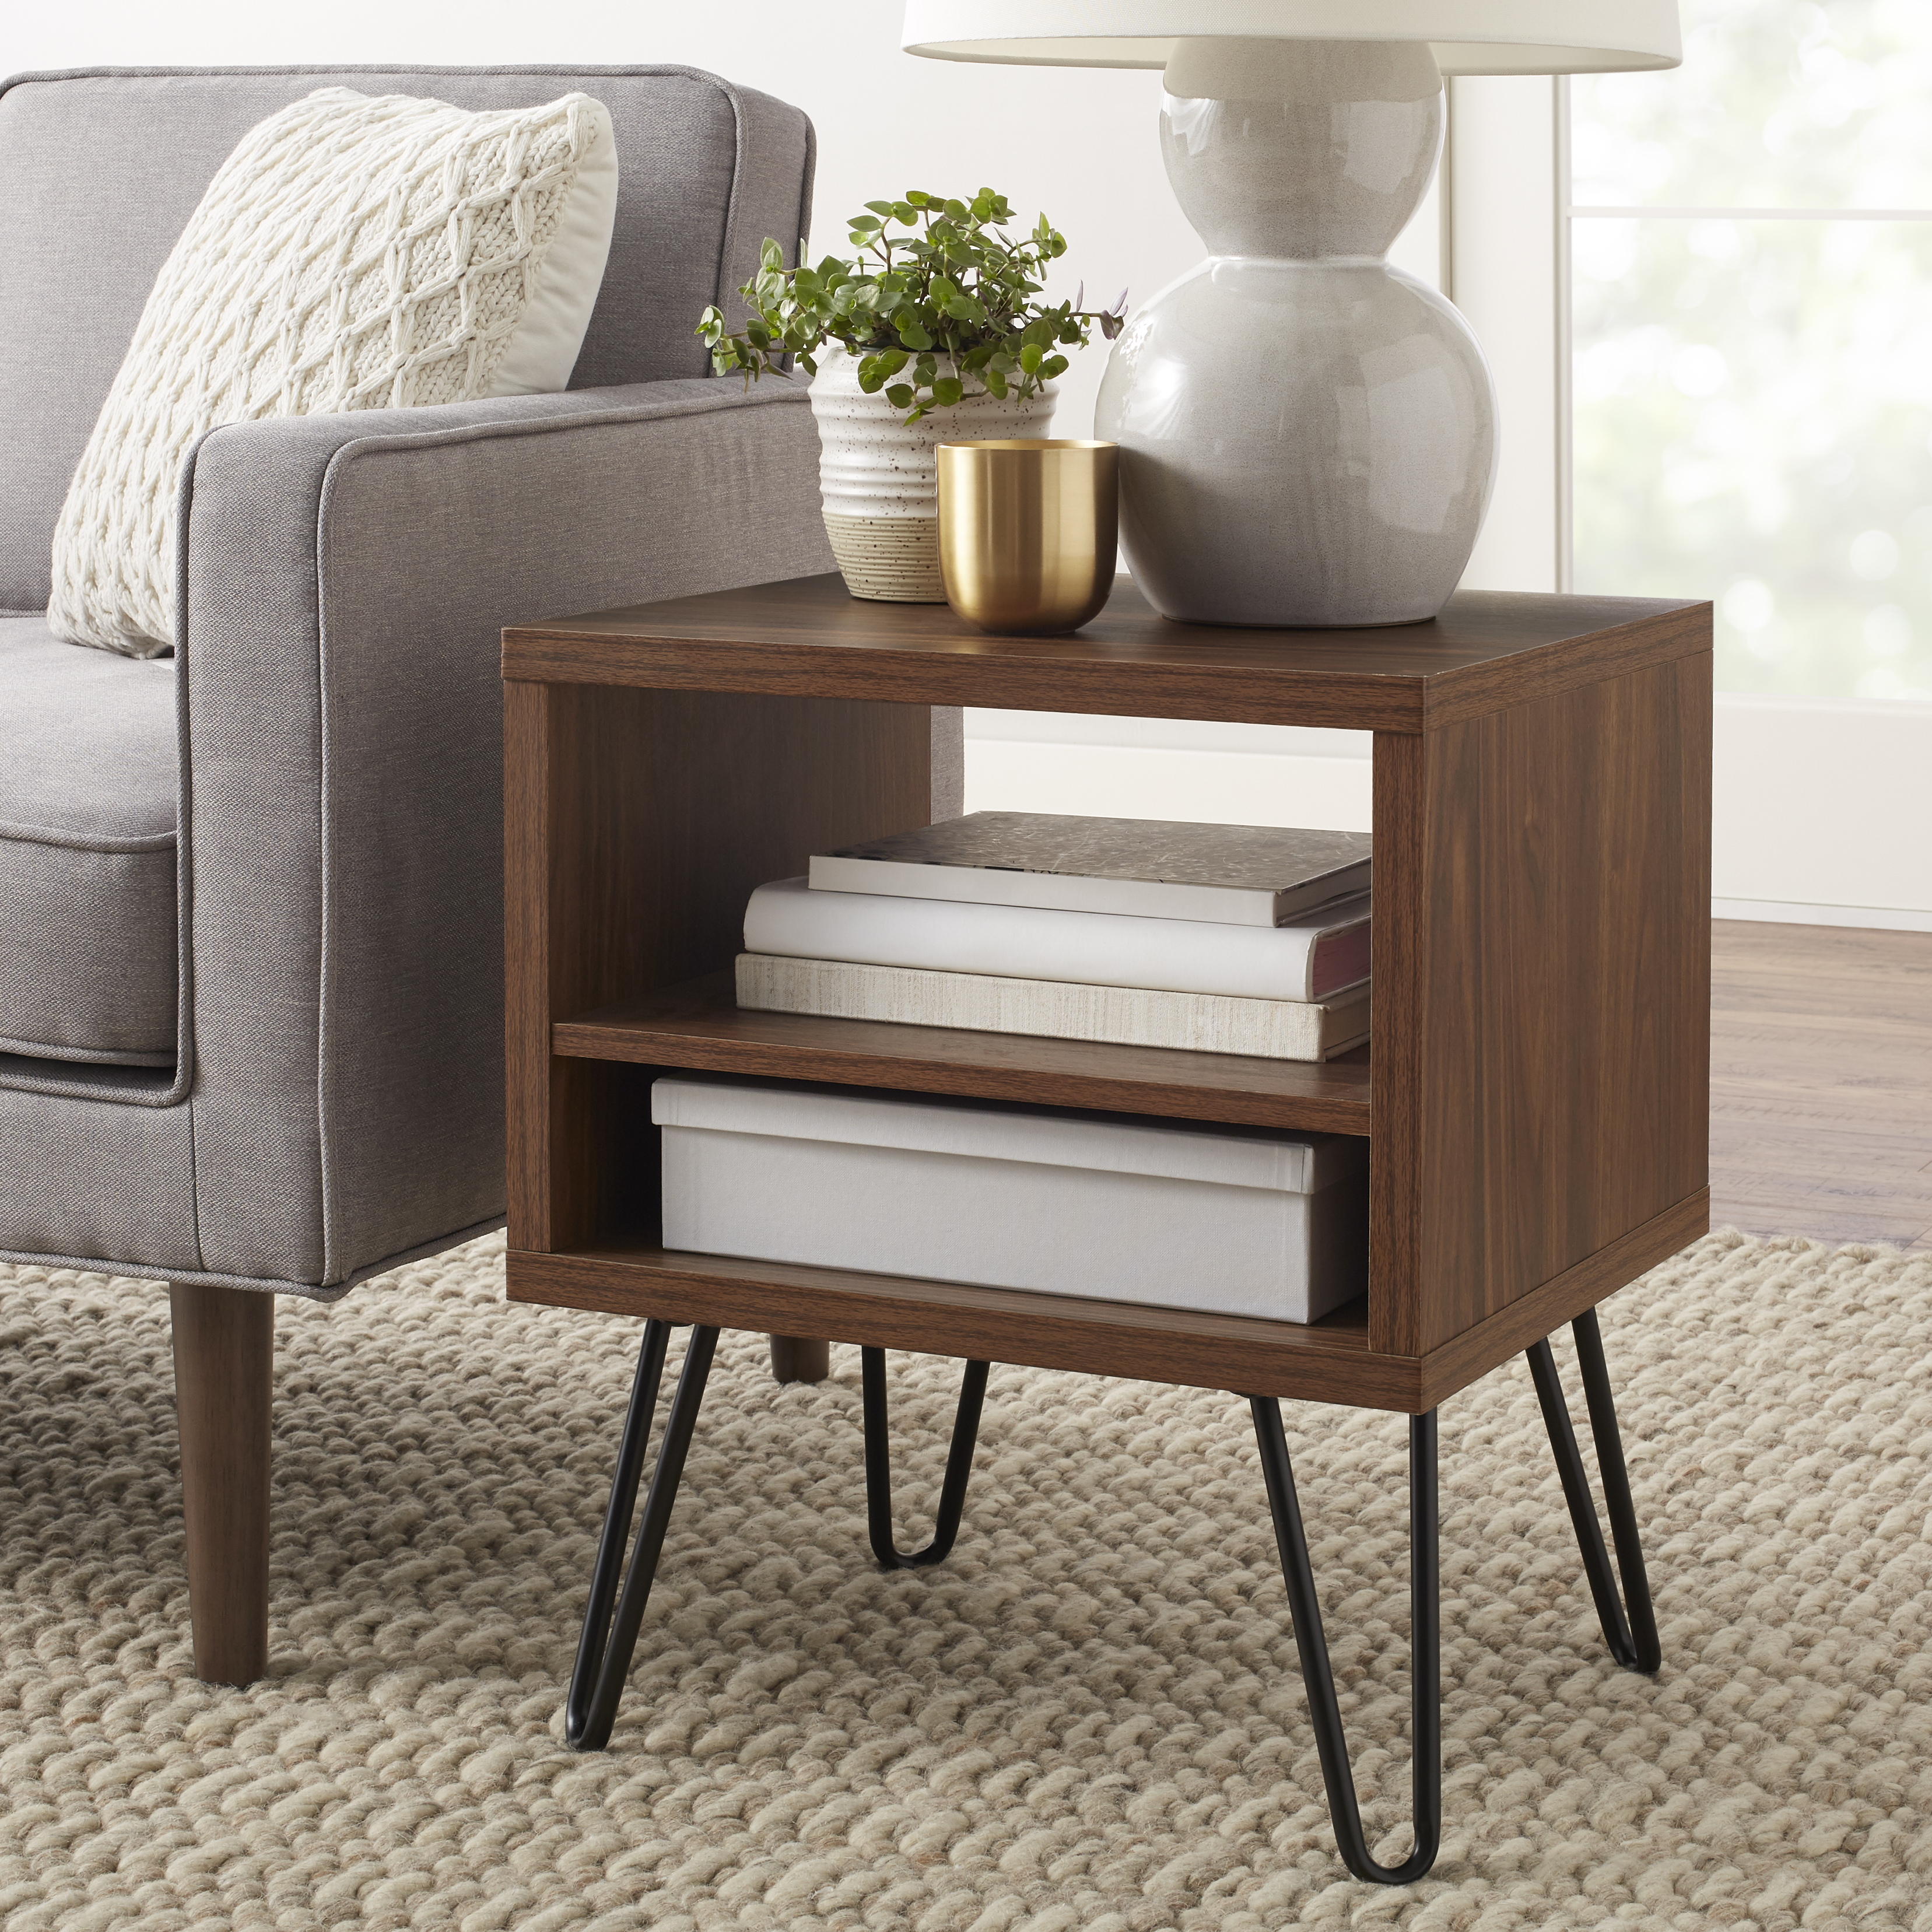 mainstays bennett mid century hairpin accent table room essentials mixed material modern floor lamp with attached mirrored bedroom end tables stylish lamps door console cabinet